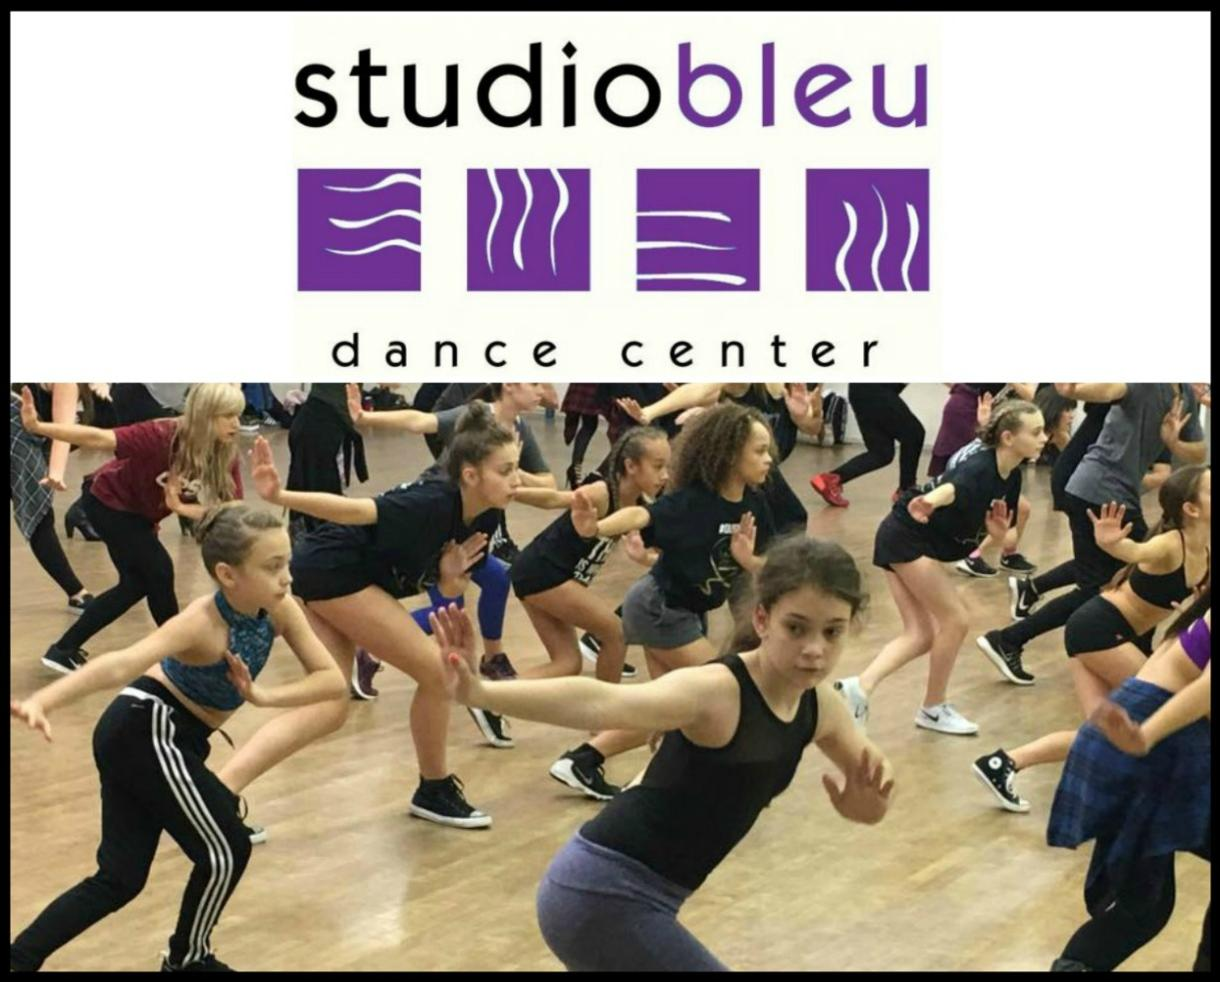 One Week of Half-Day Studio Bleu Dance Camp